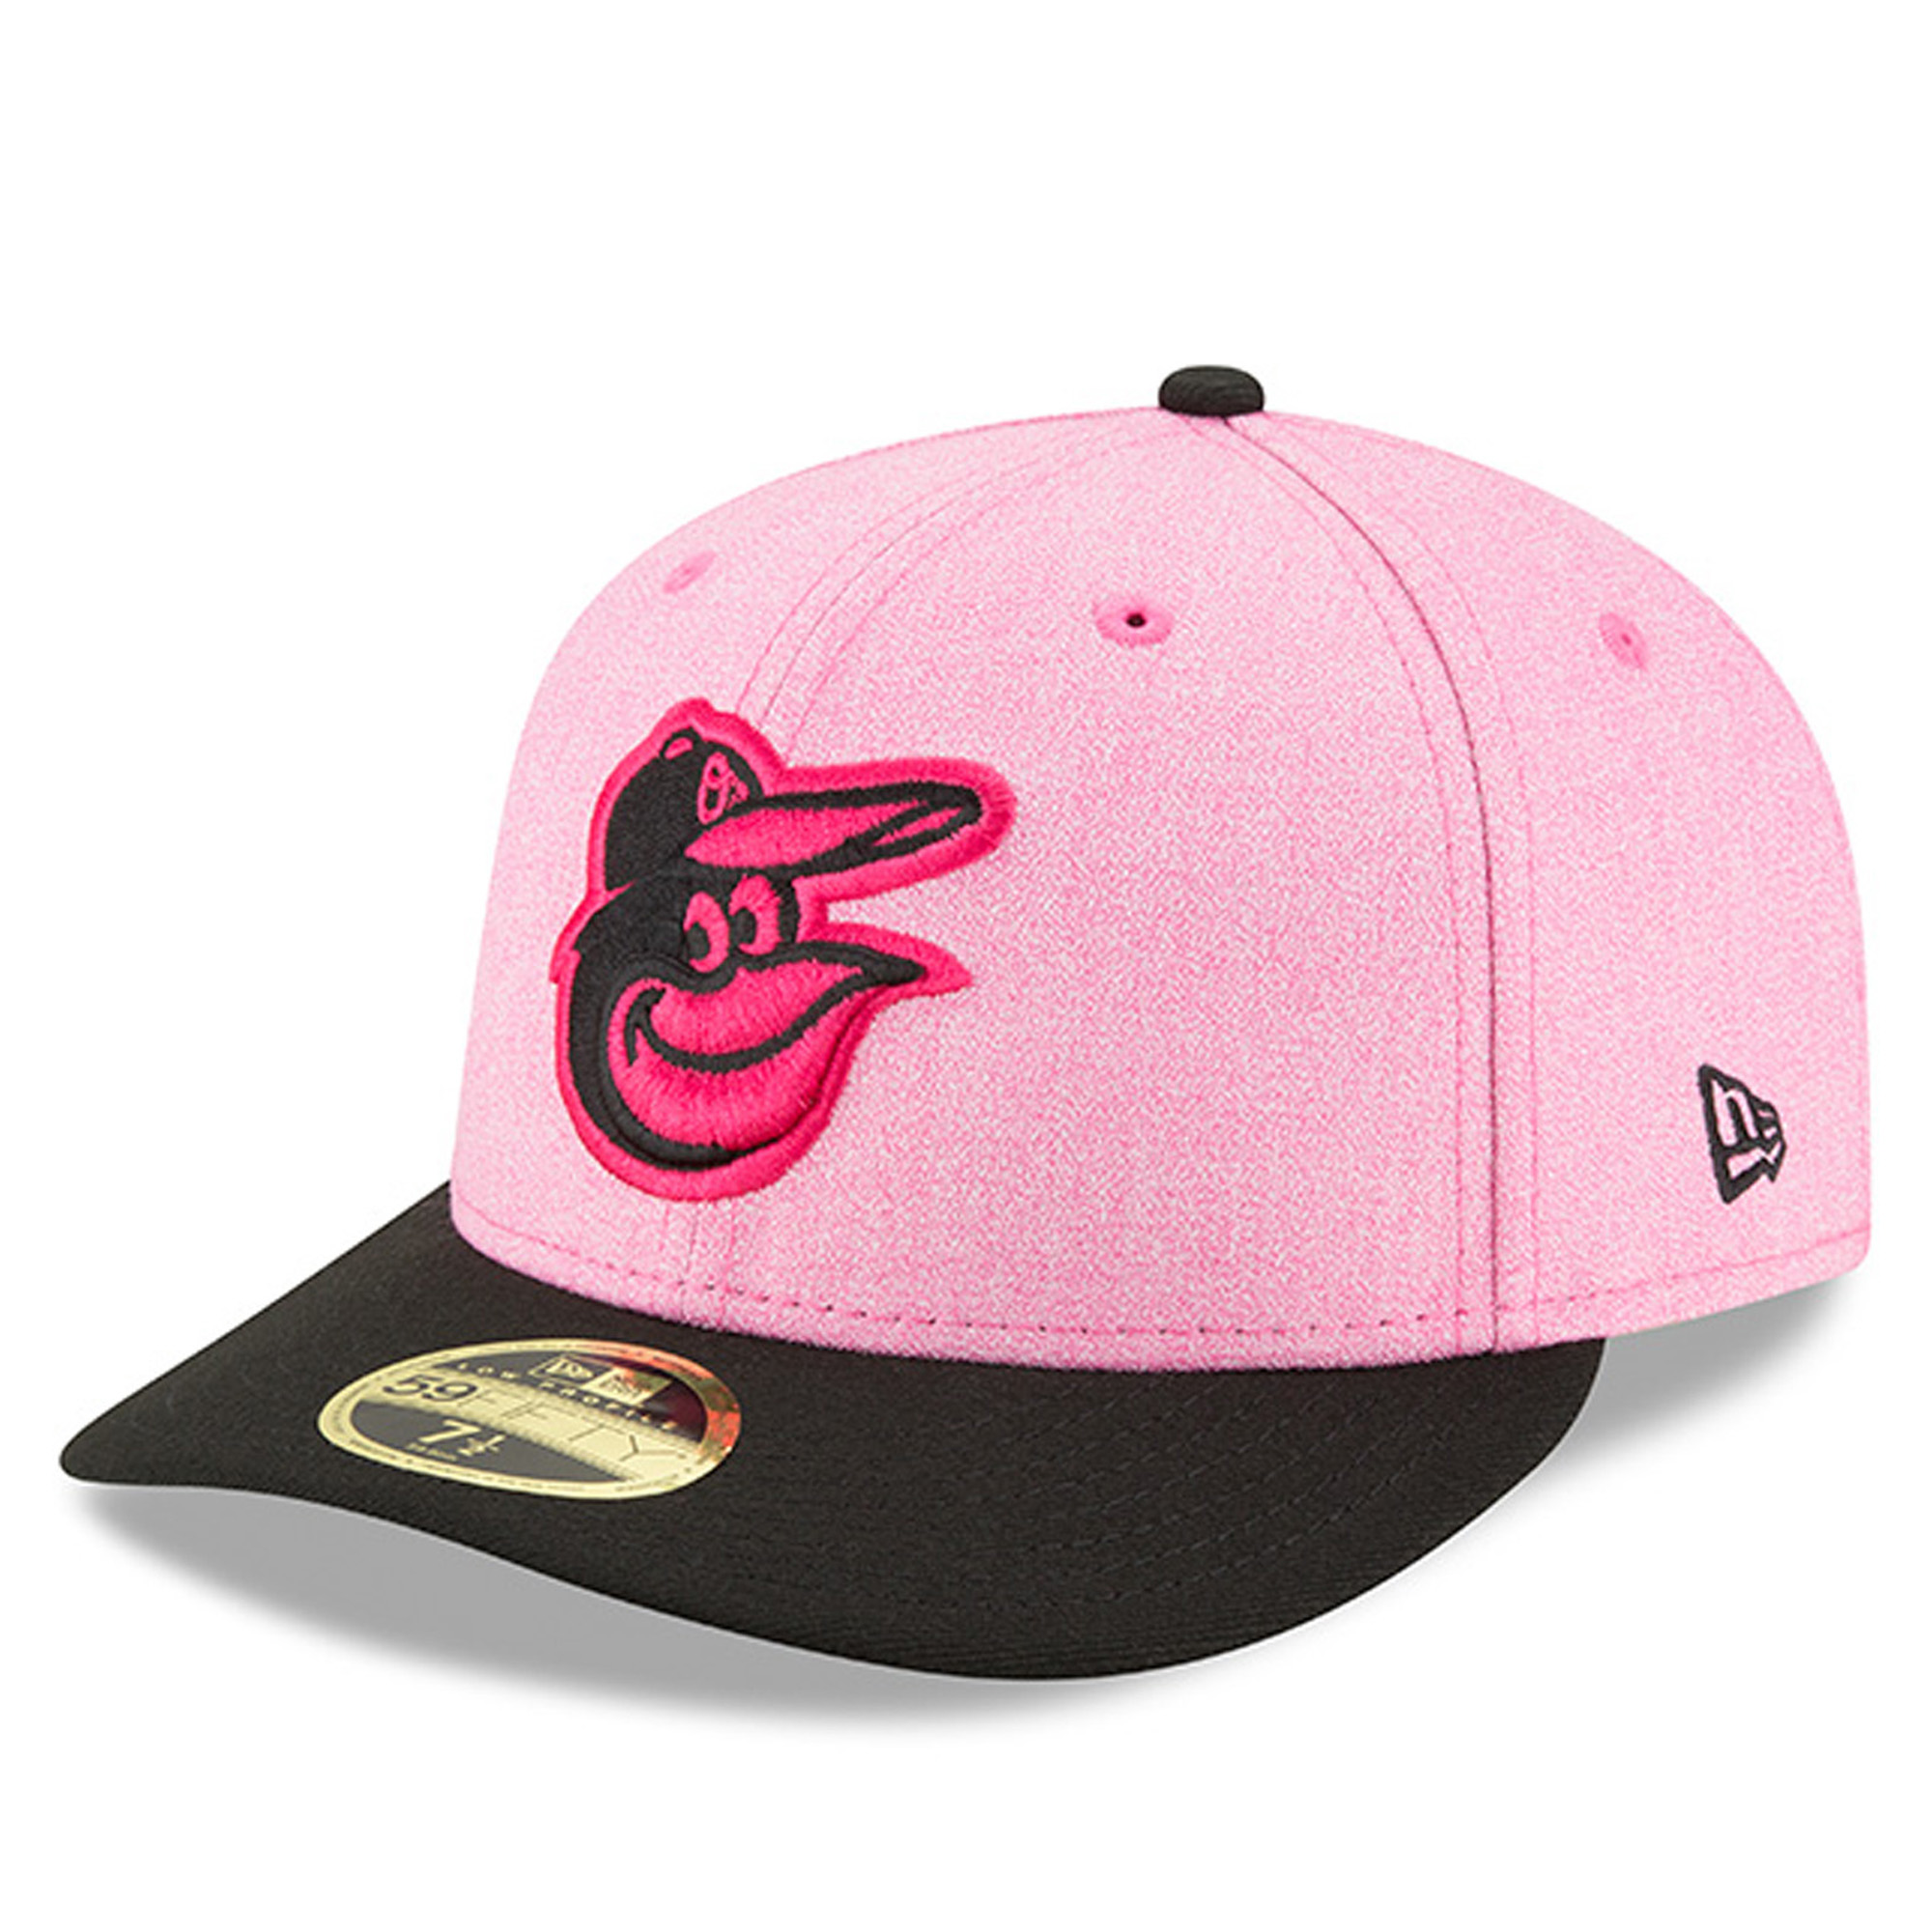 Baltimore Orioles New Era 2018 Mother's Day On-Field Low Profile 59FIFTY Fitted Hat - Pink/Black